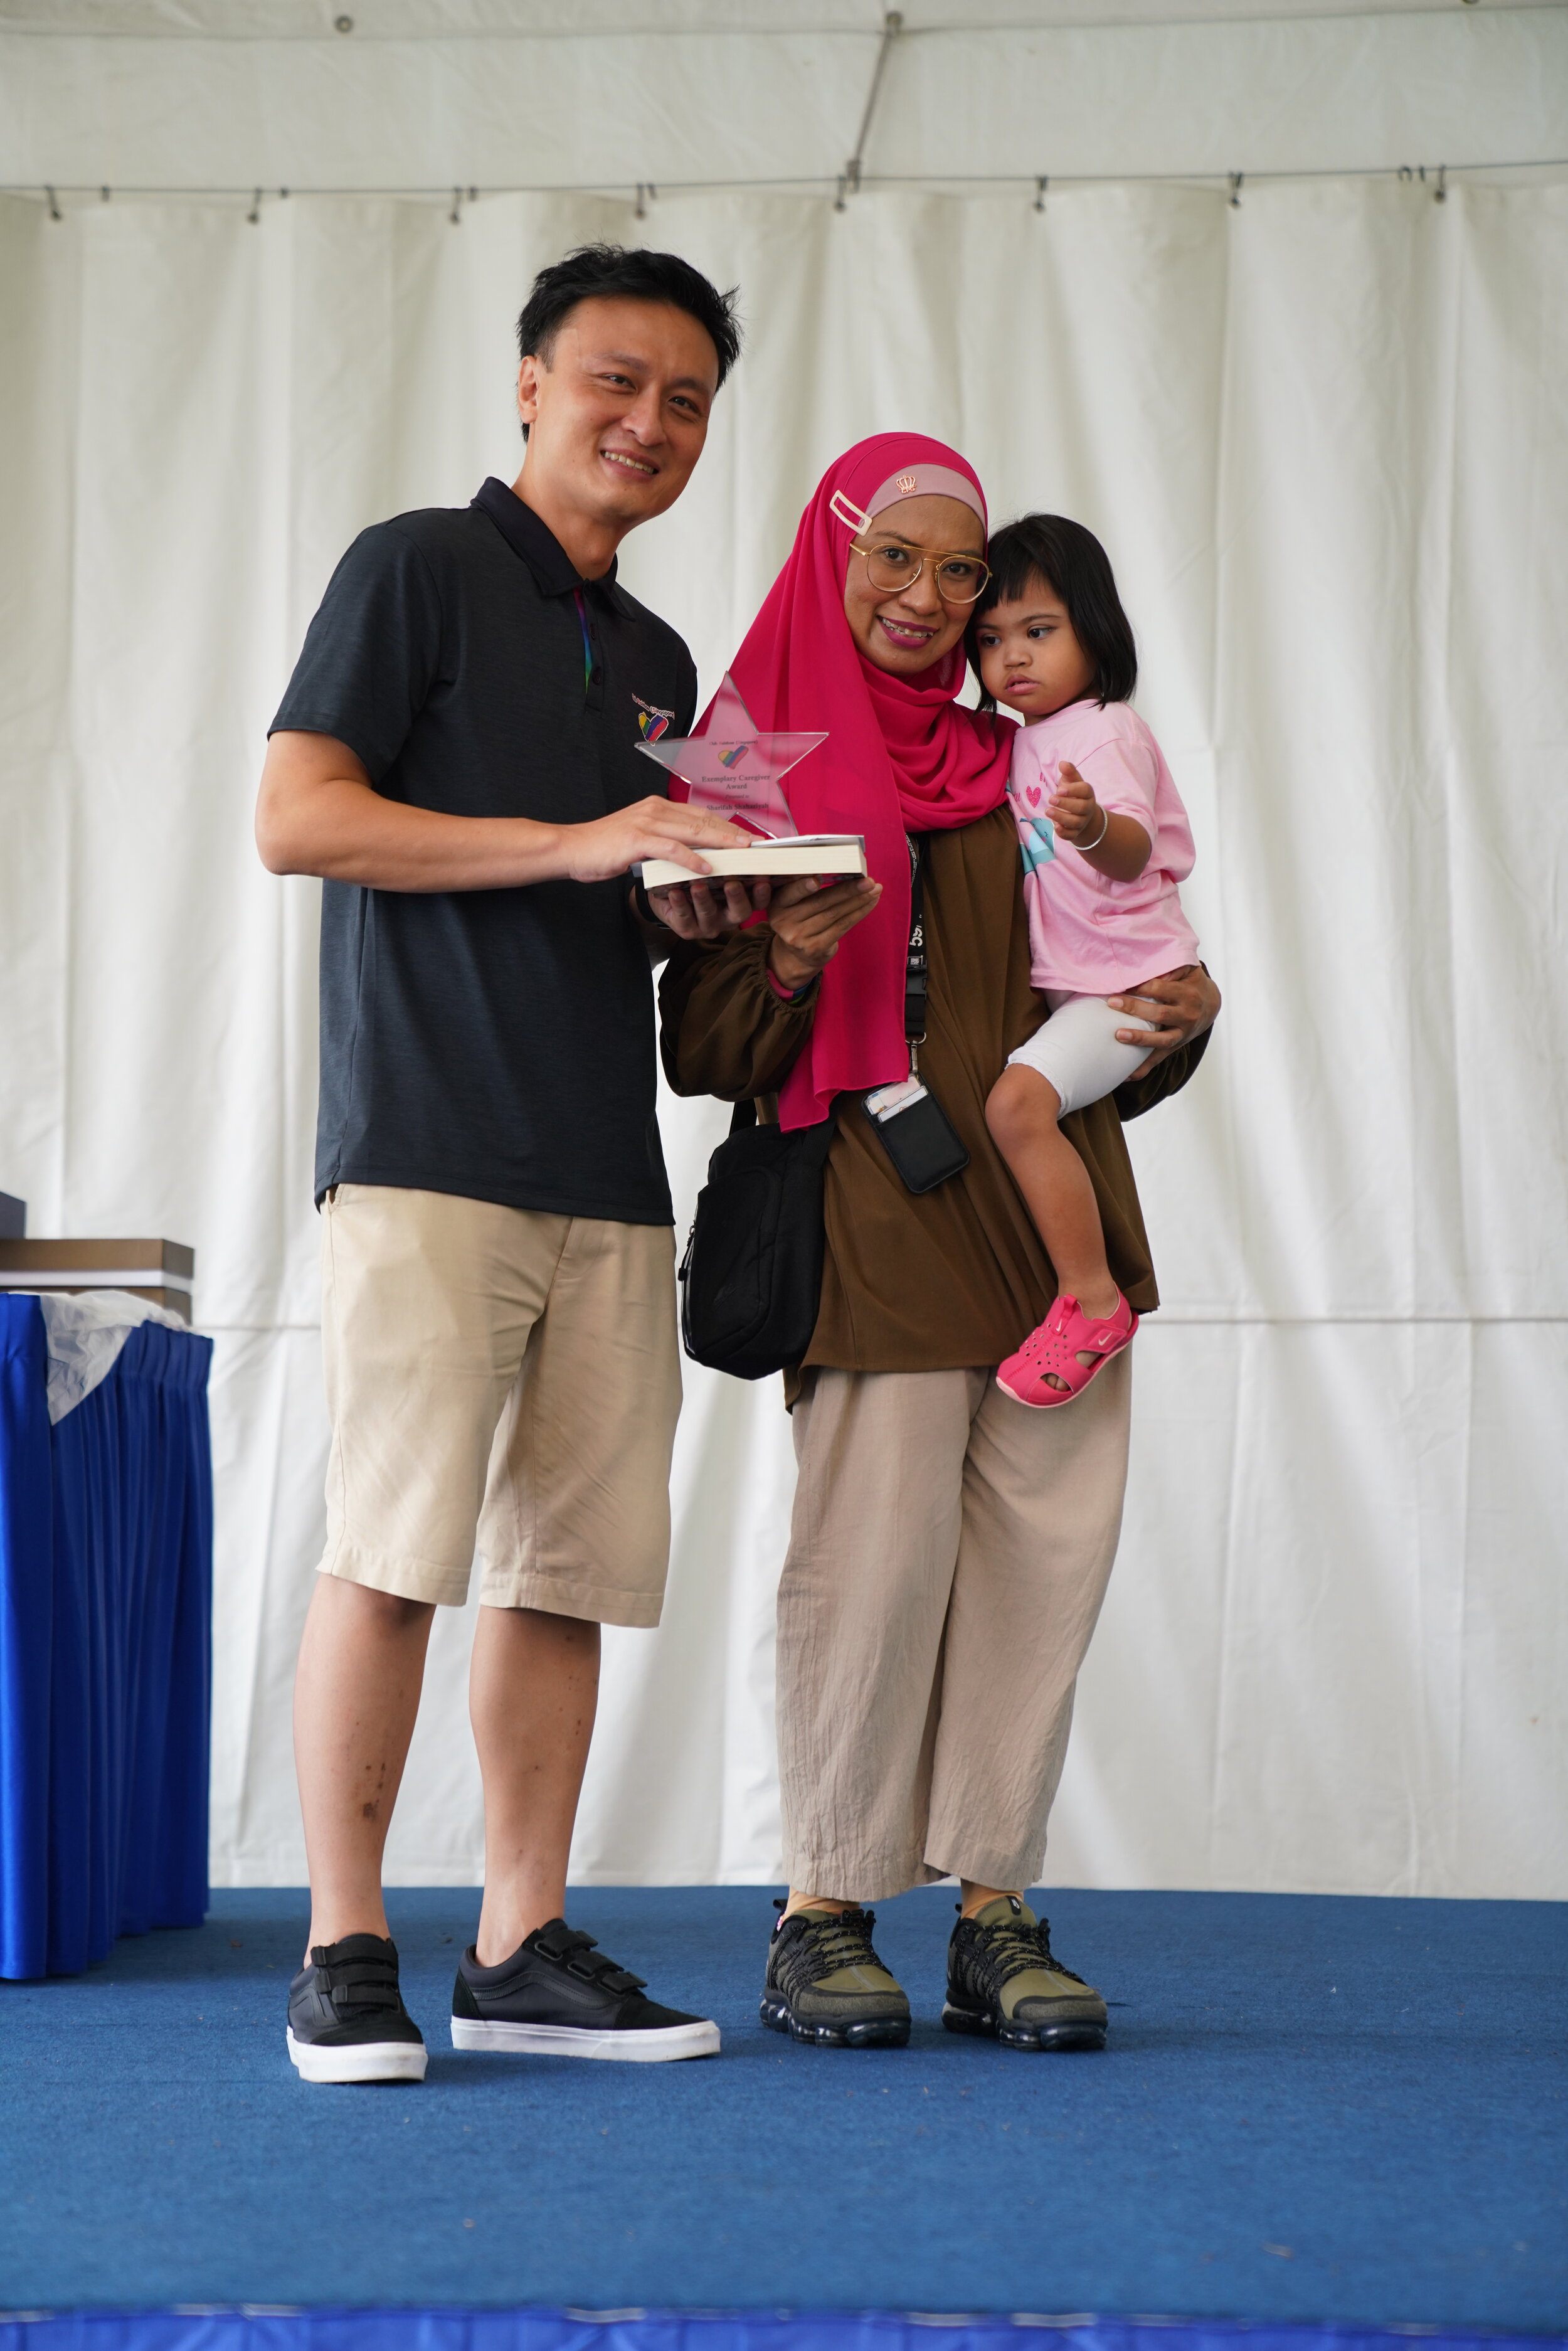 Mdm Sharifah Shahariyah, mother of 5-year-old Alya Insyirah